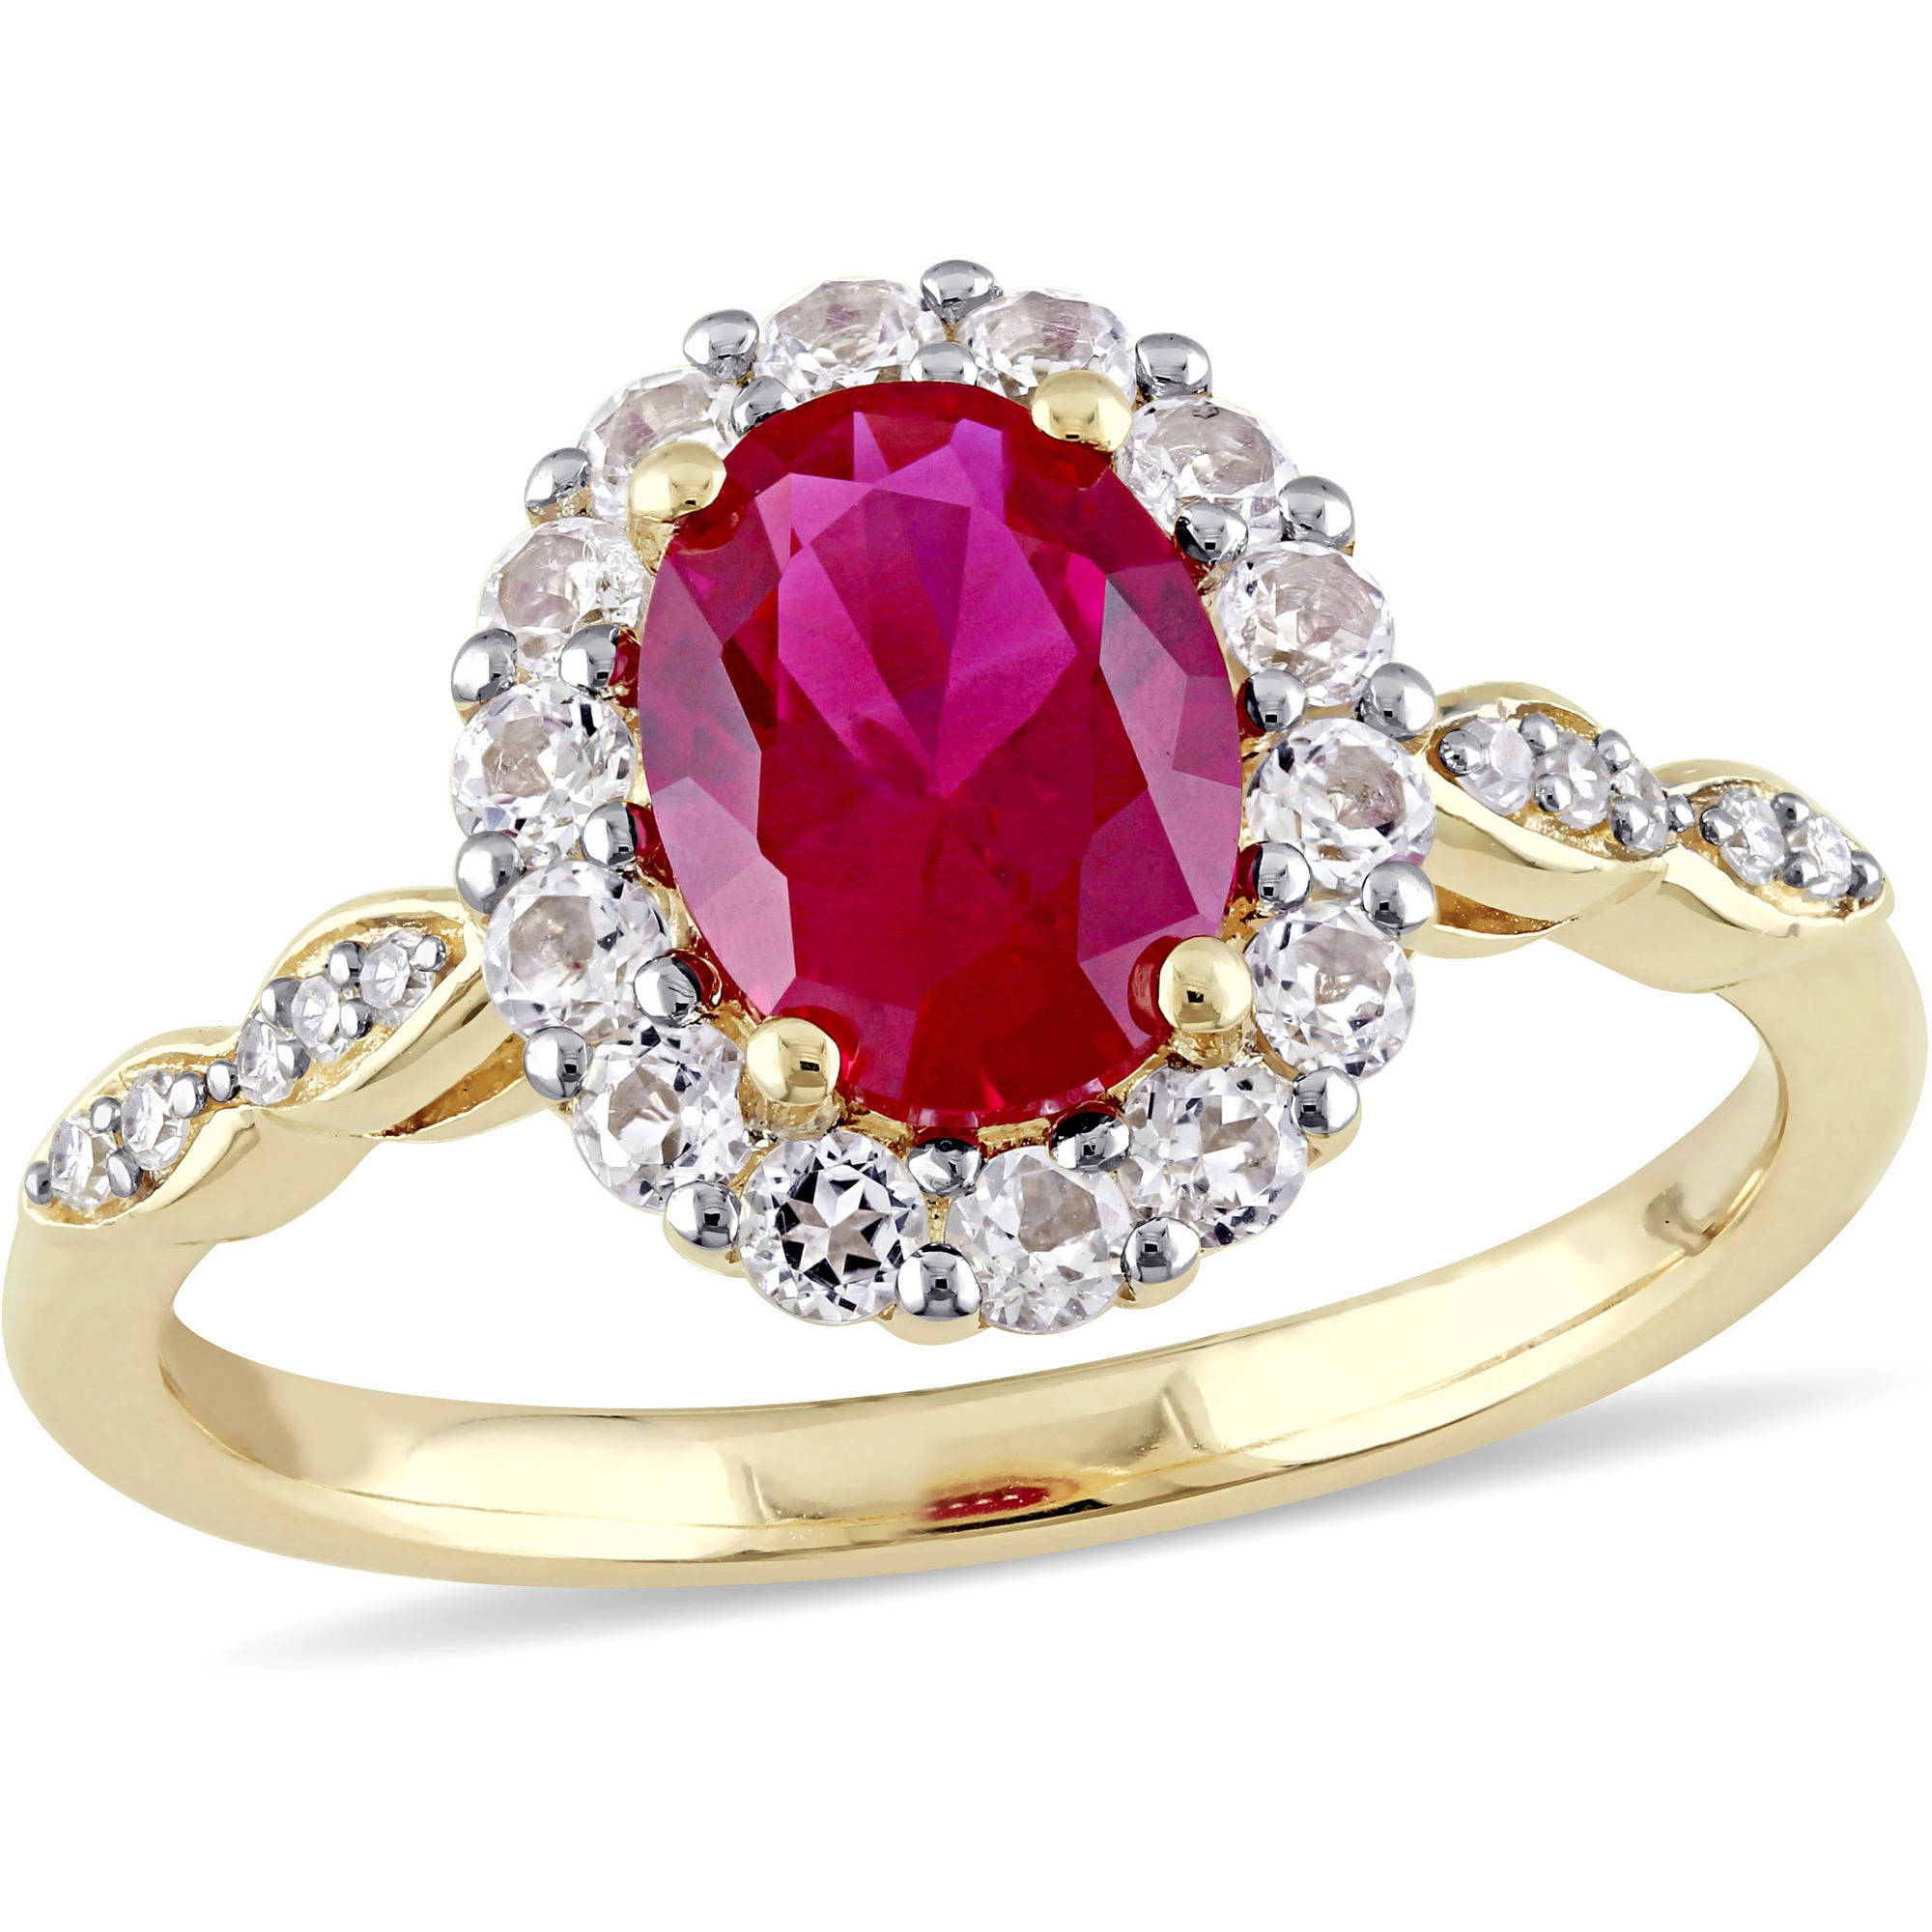 Tangelo 2-5 8 Carat T.G.W. Created Ruby, White Topaz and Diamond-Accent 14kt Yellow Gold Vintage Ring by Tangelo